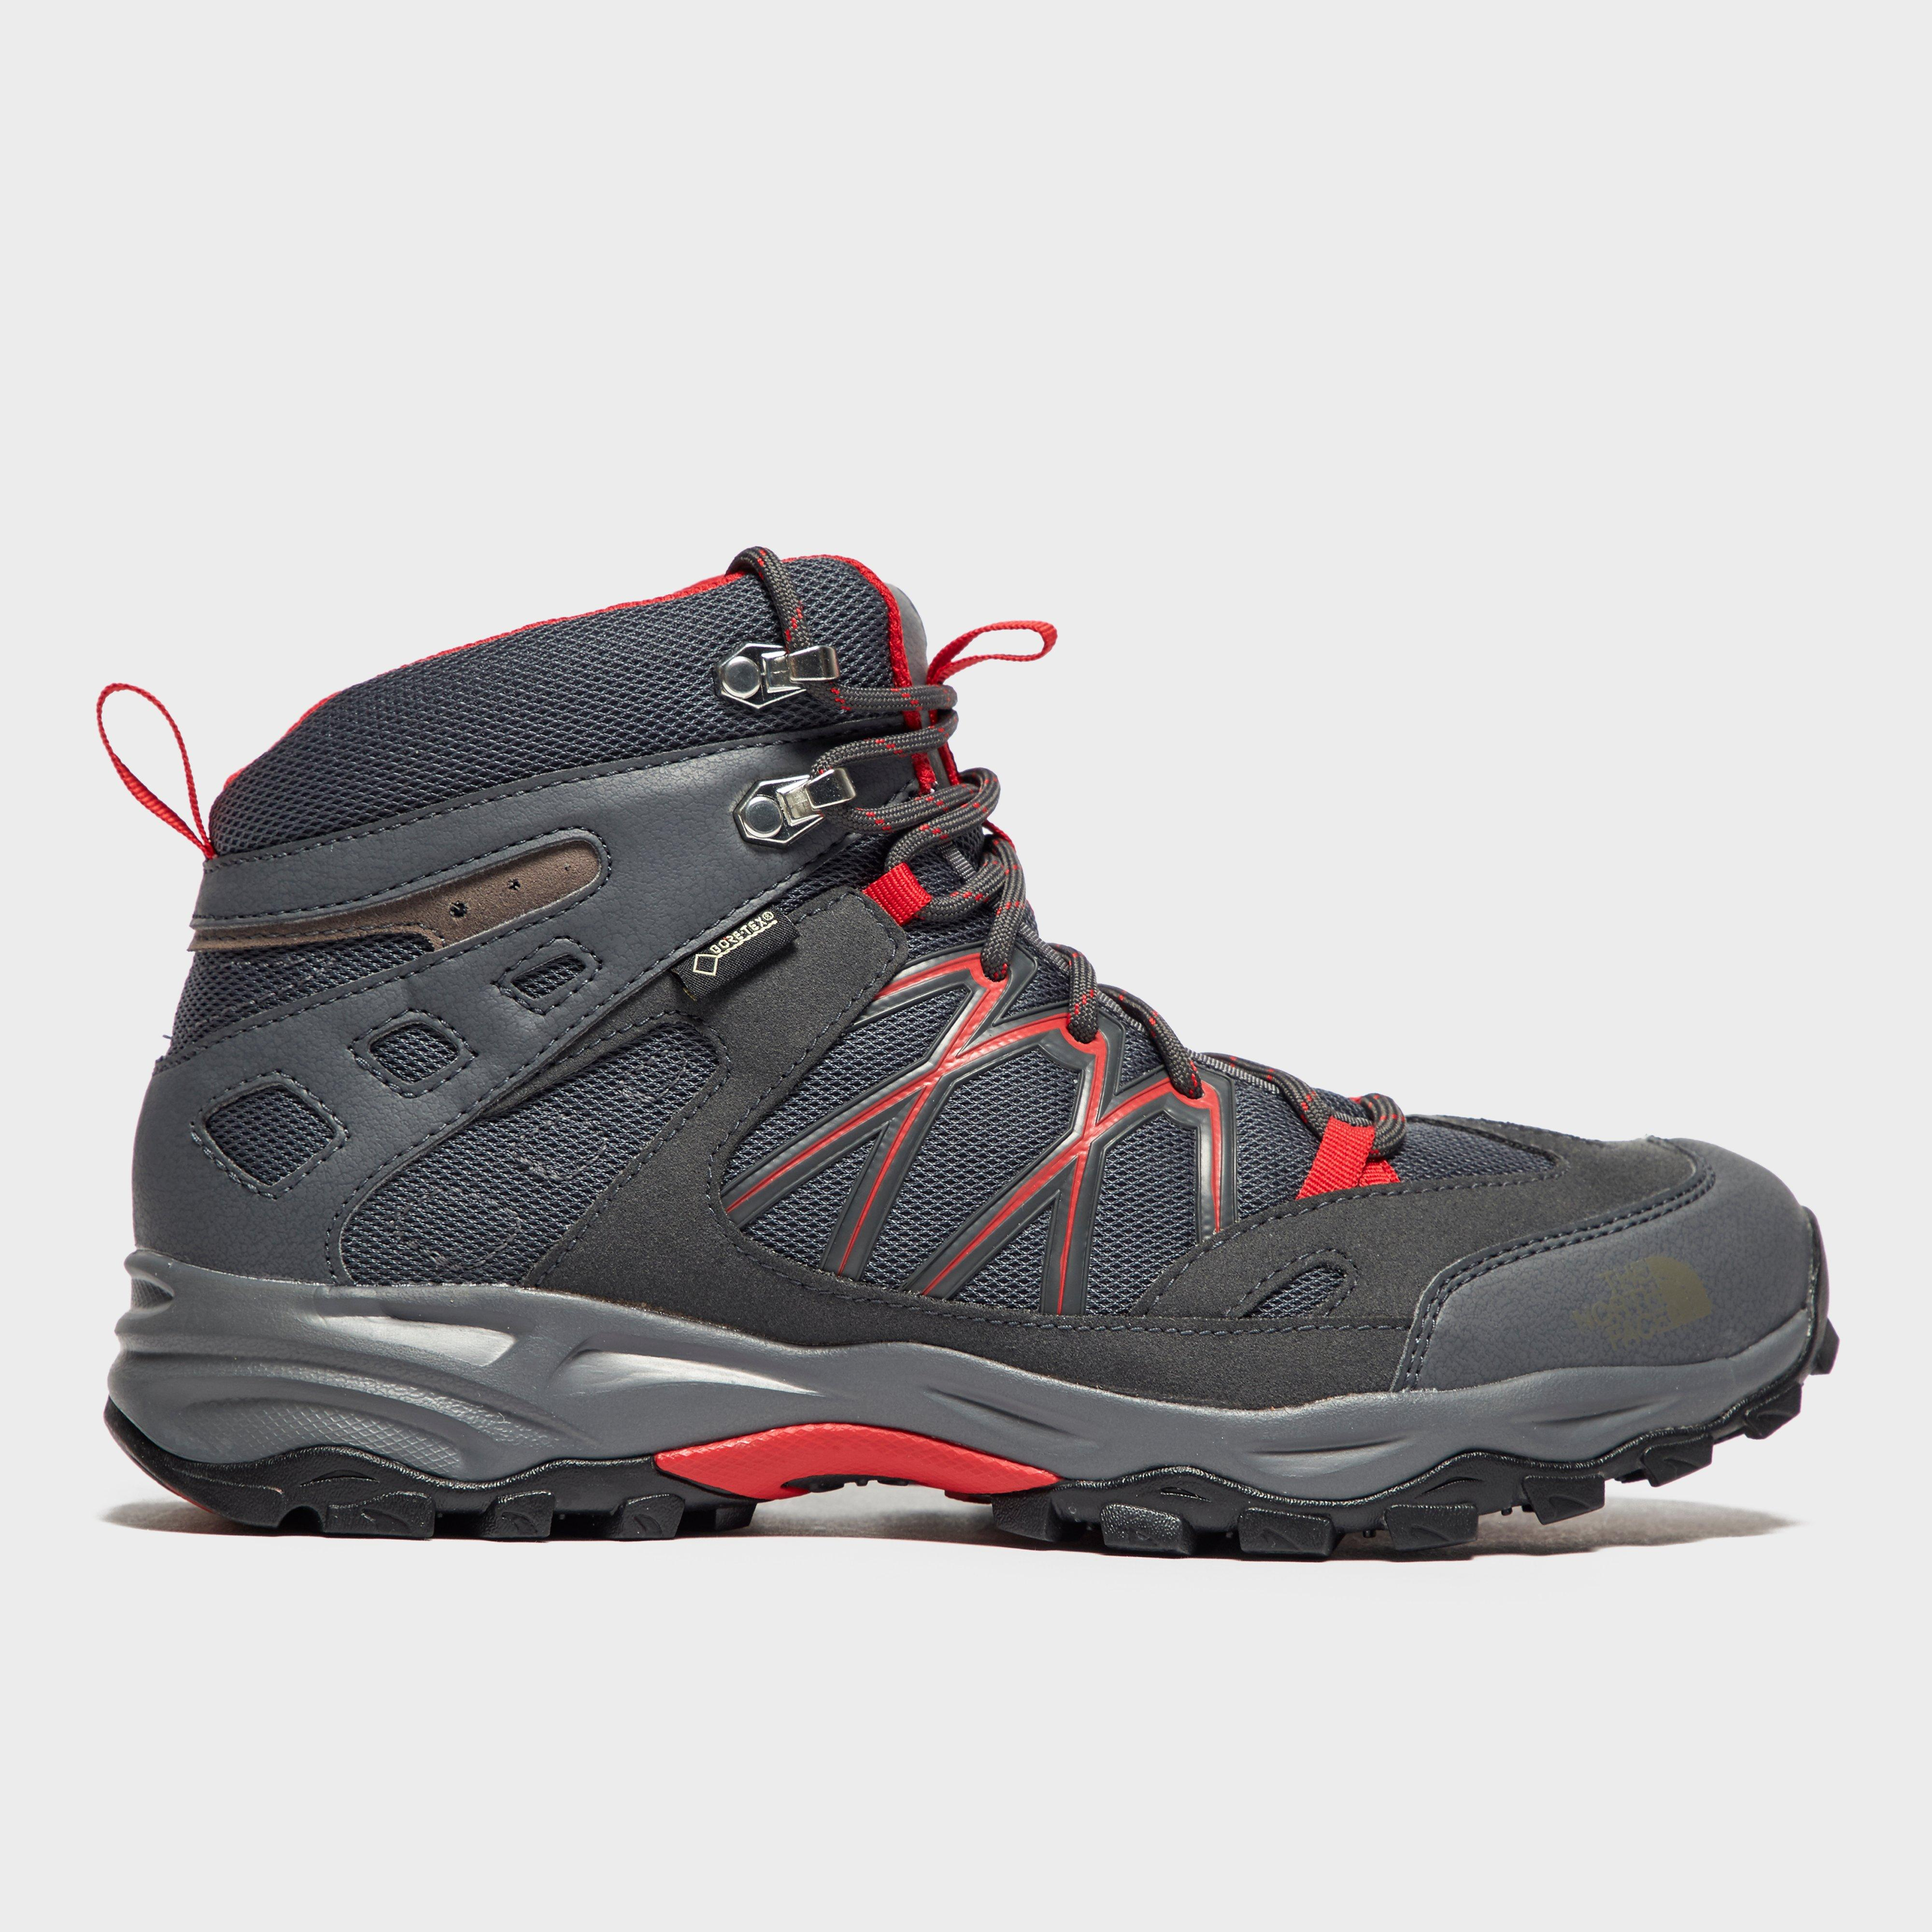 Mens walking boots review